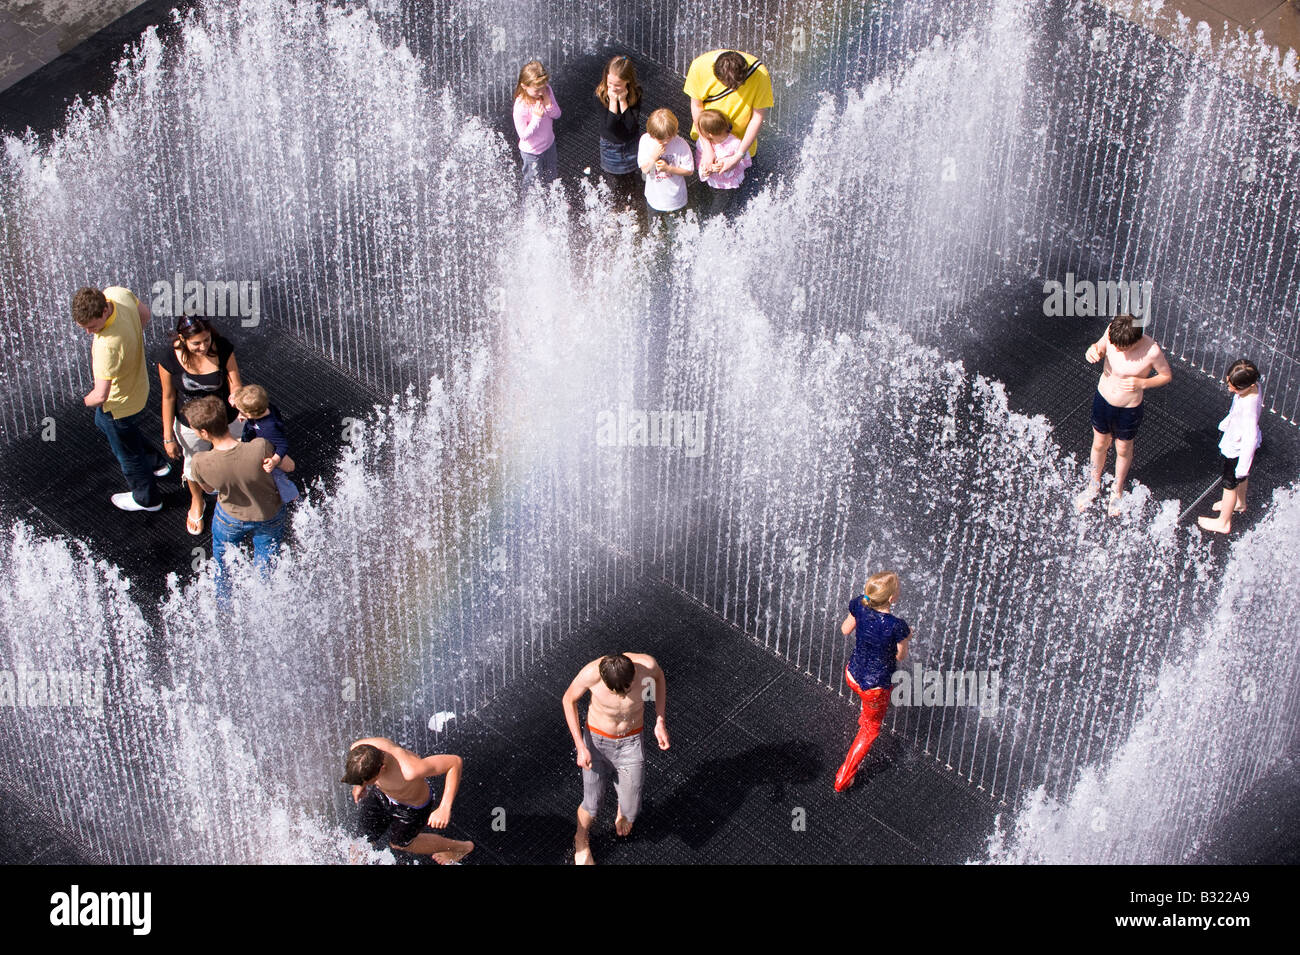 Children enjoy playing in water fountain on hot summer day, Southbak, London, SE1, United Kingdom - Stock Image